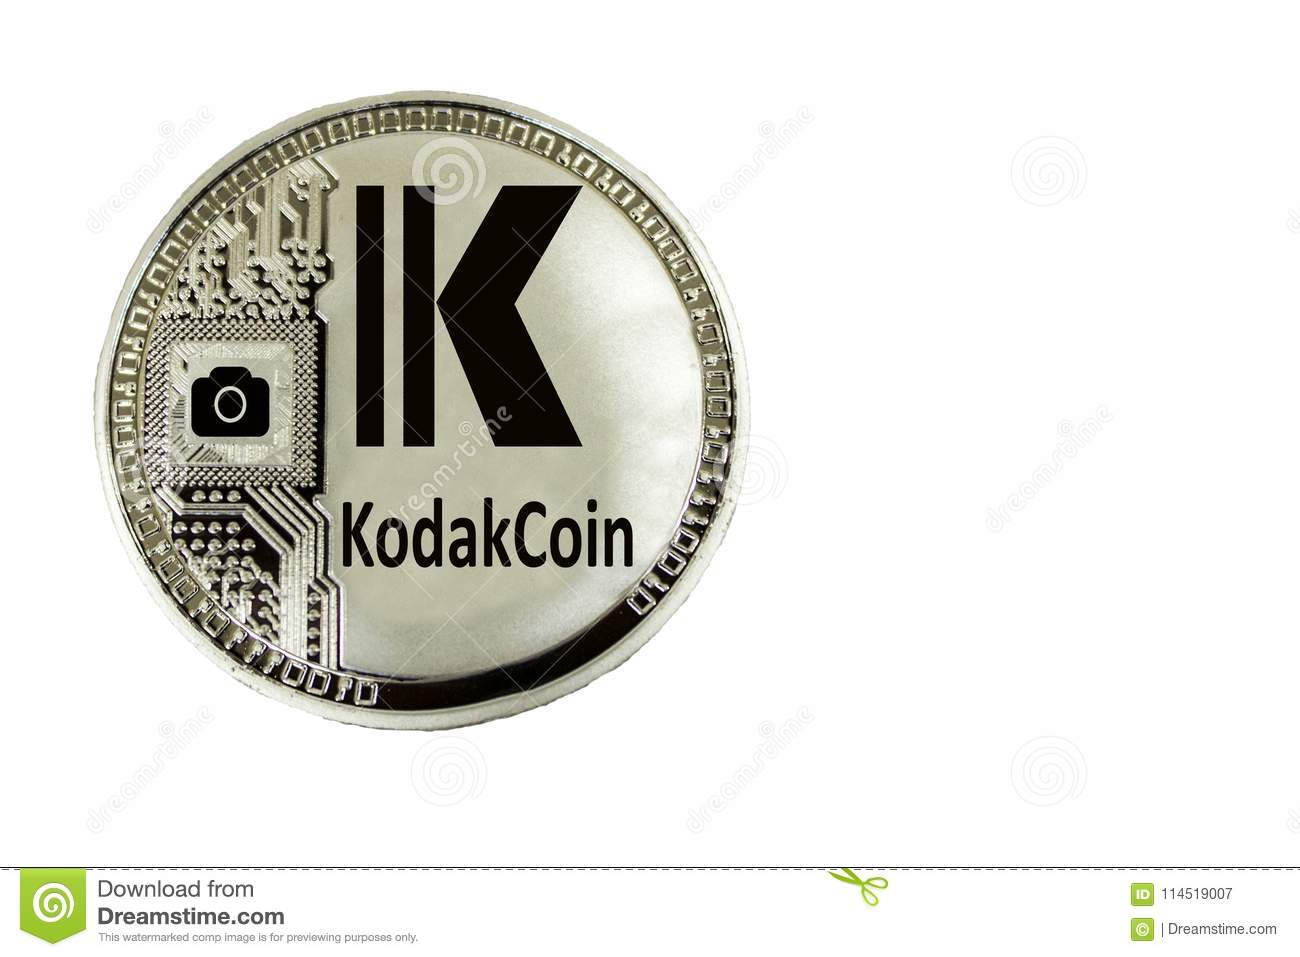 kodak coin cryptocurrency